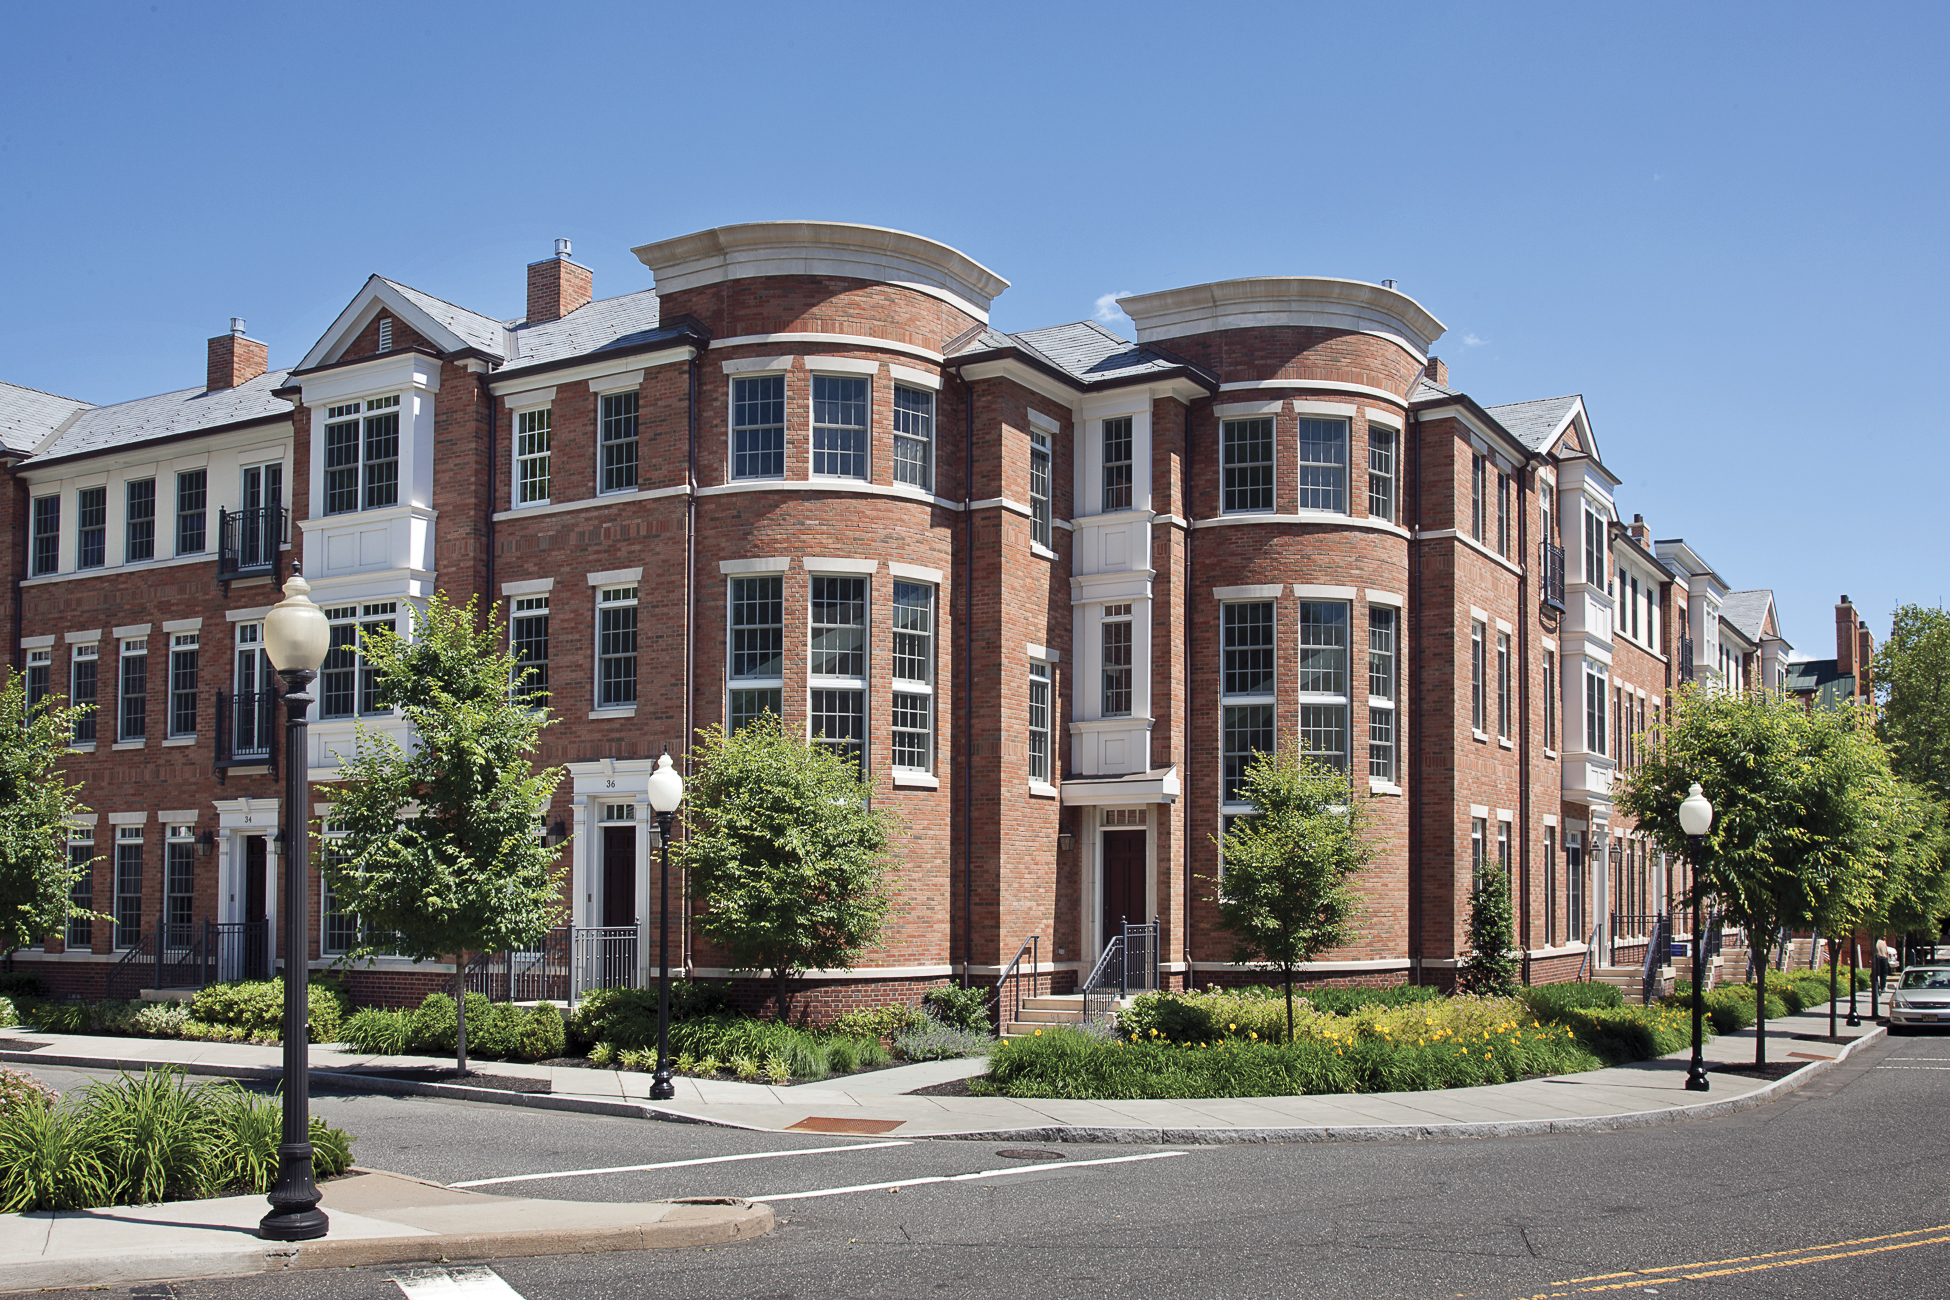 Villetta a schiera per Vendita alle ore Luxurious Townhome in the Heart of Princeton 30 Paul Robeson Place Princeton, New Jersey, 08540 Stati Uniti